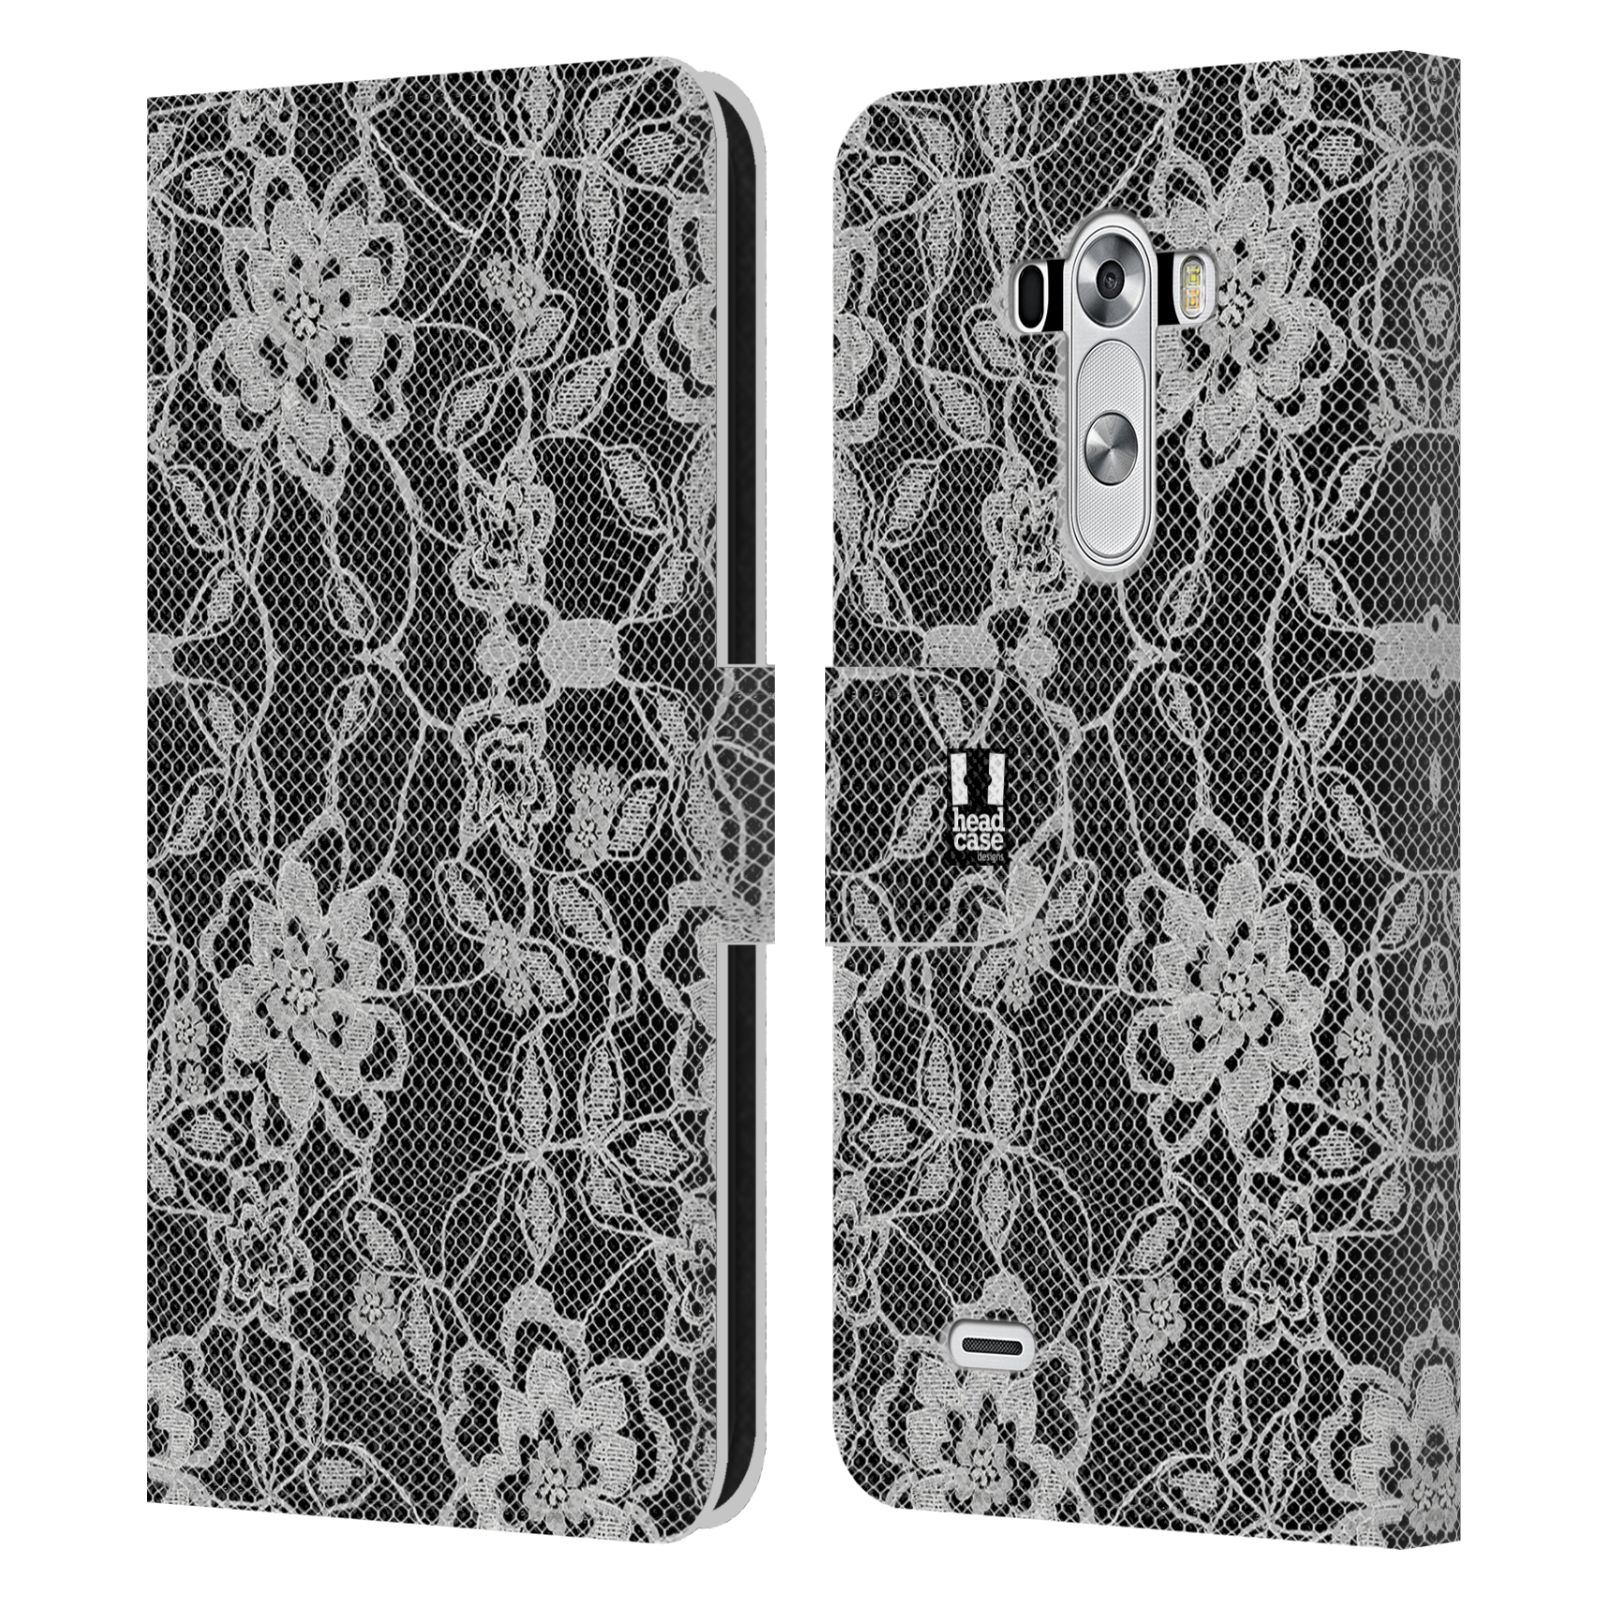 Black Leather Book Cover : Head case designs black lace leather book wallet